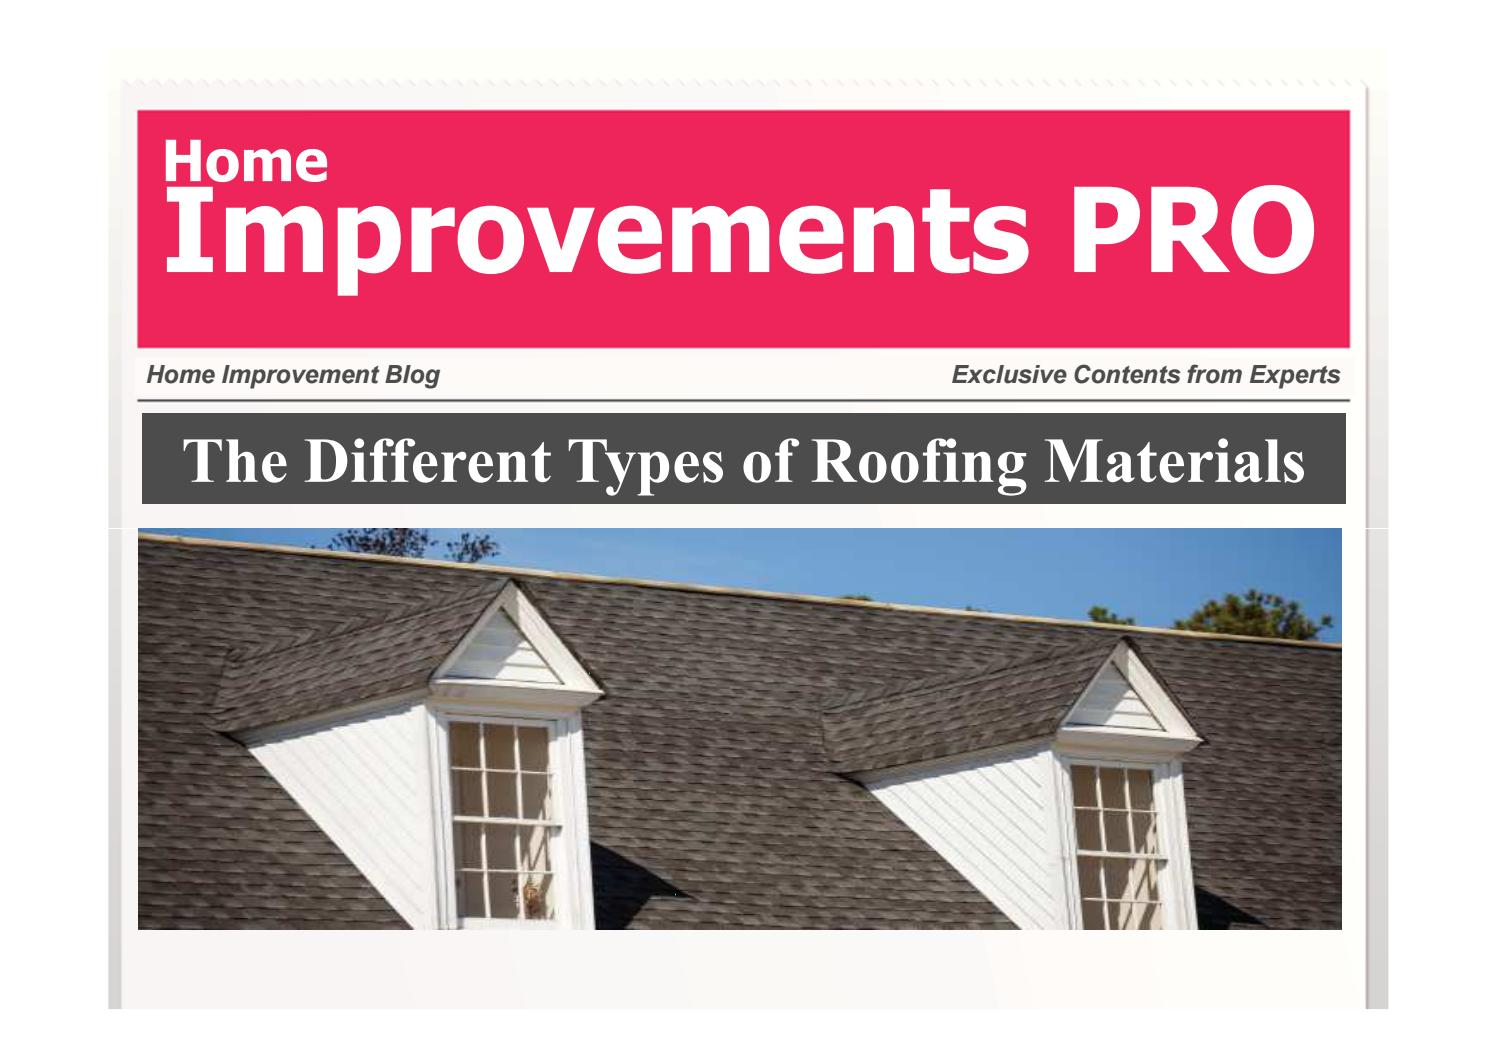 The different types of roofing materials ppt by vengat for Different types of roofing materials